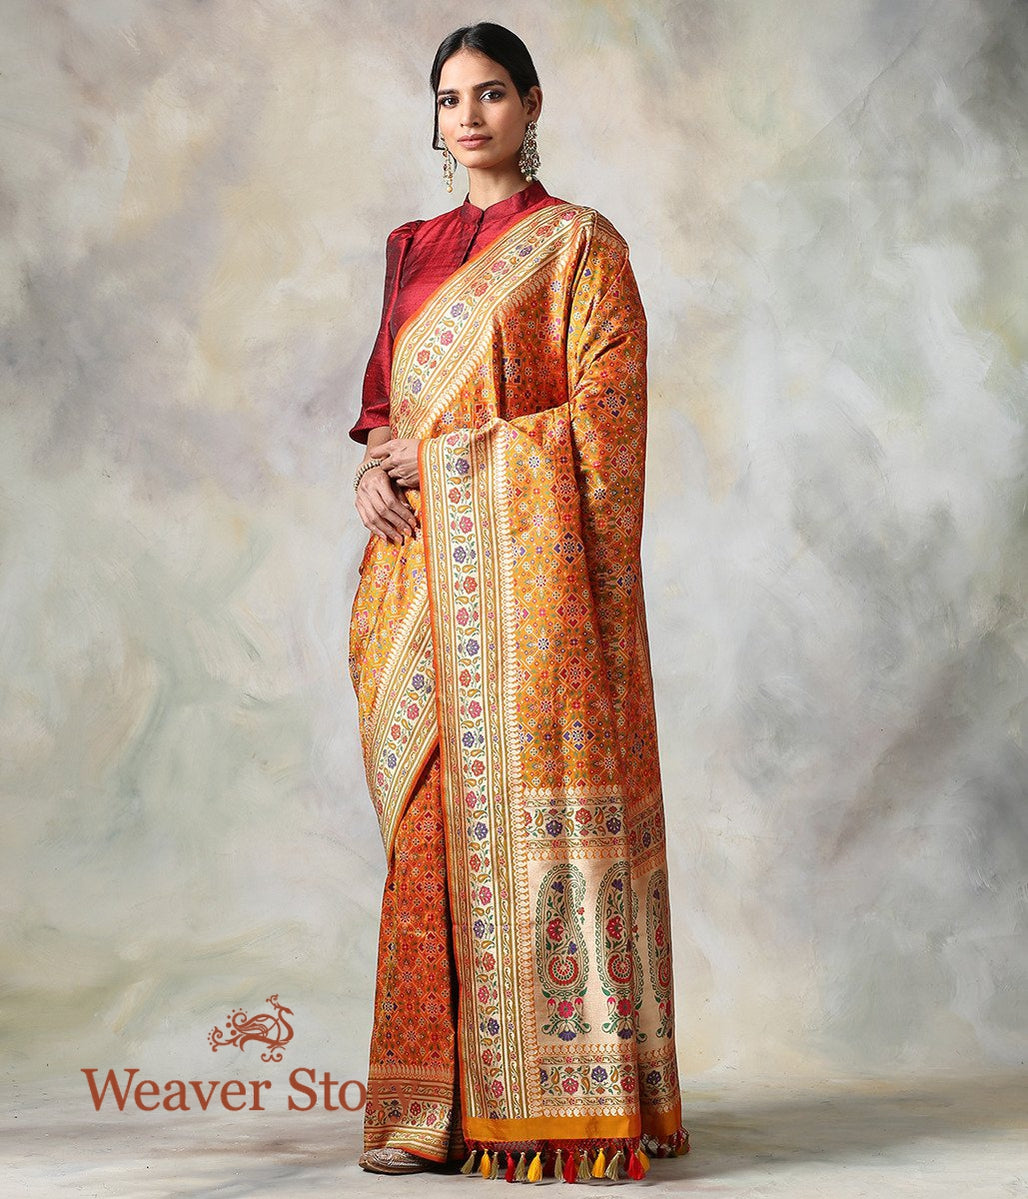 Handwoven Mustard Double Warp Patola Saree with Meenakari